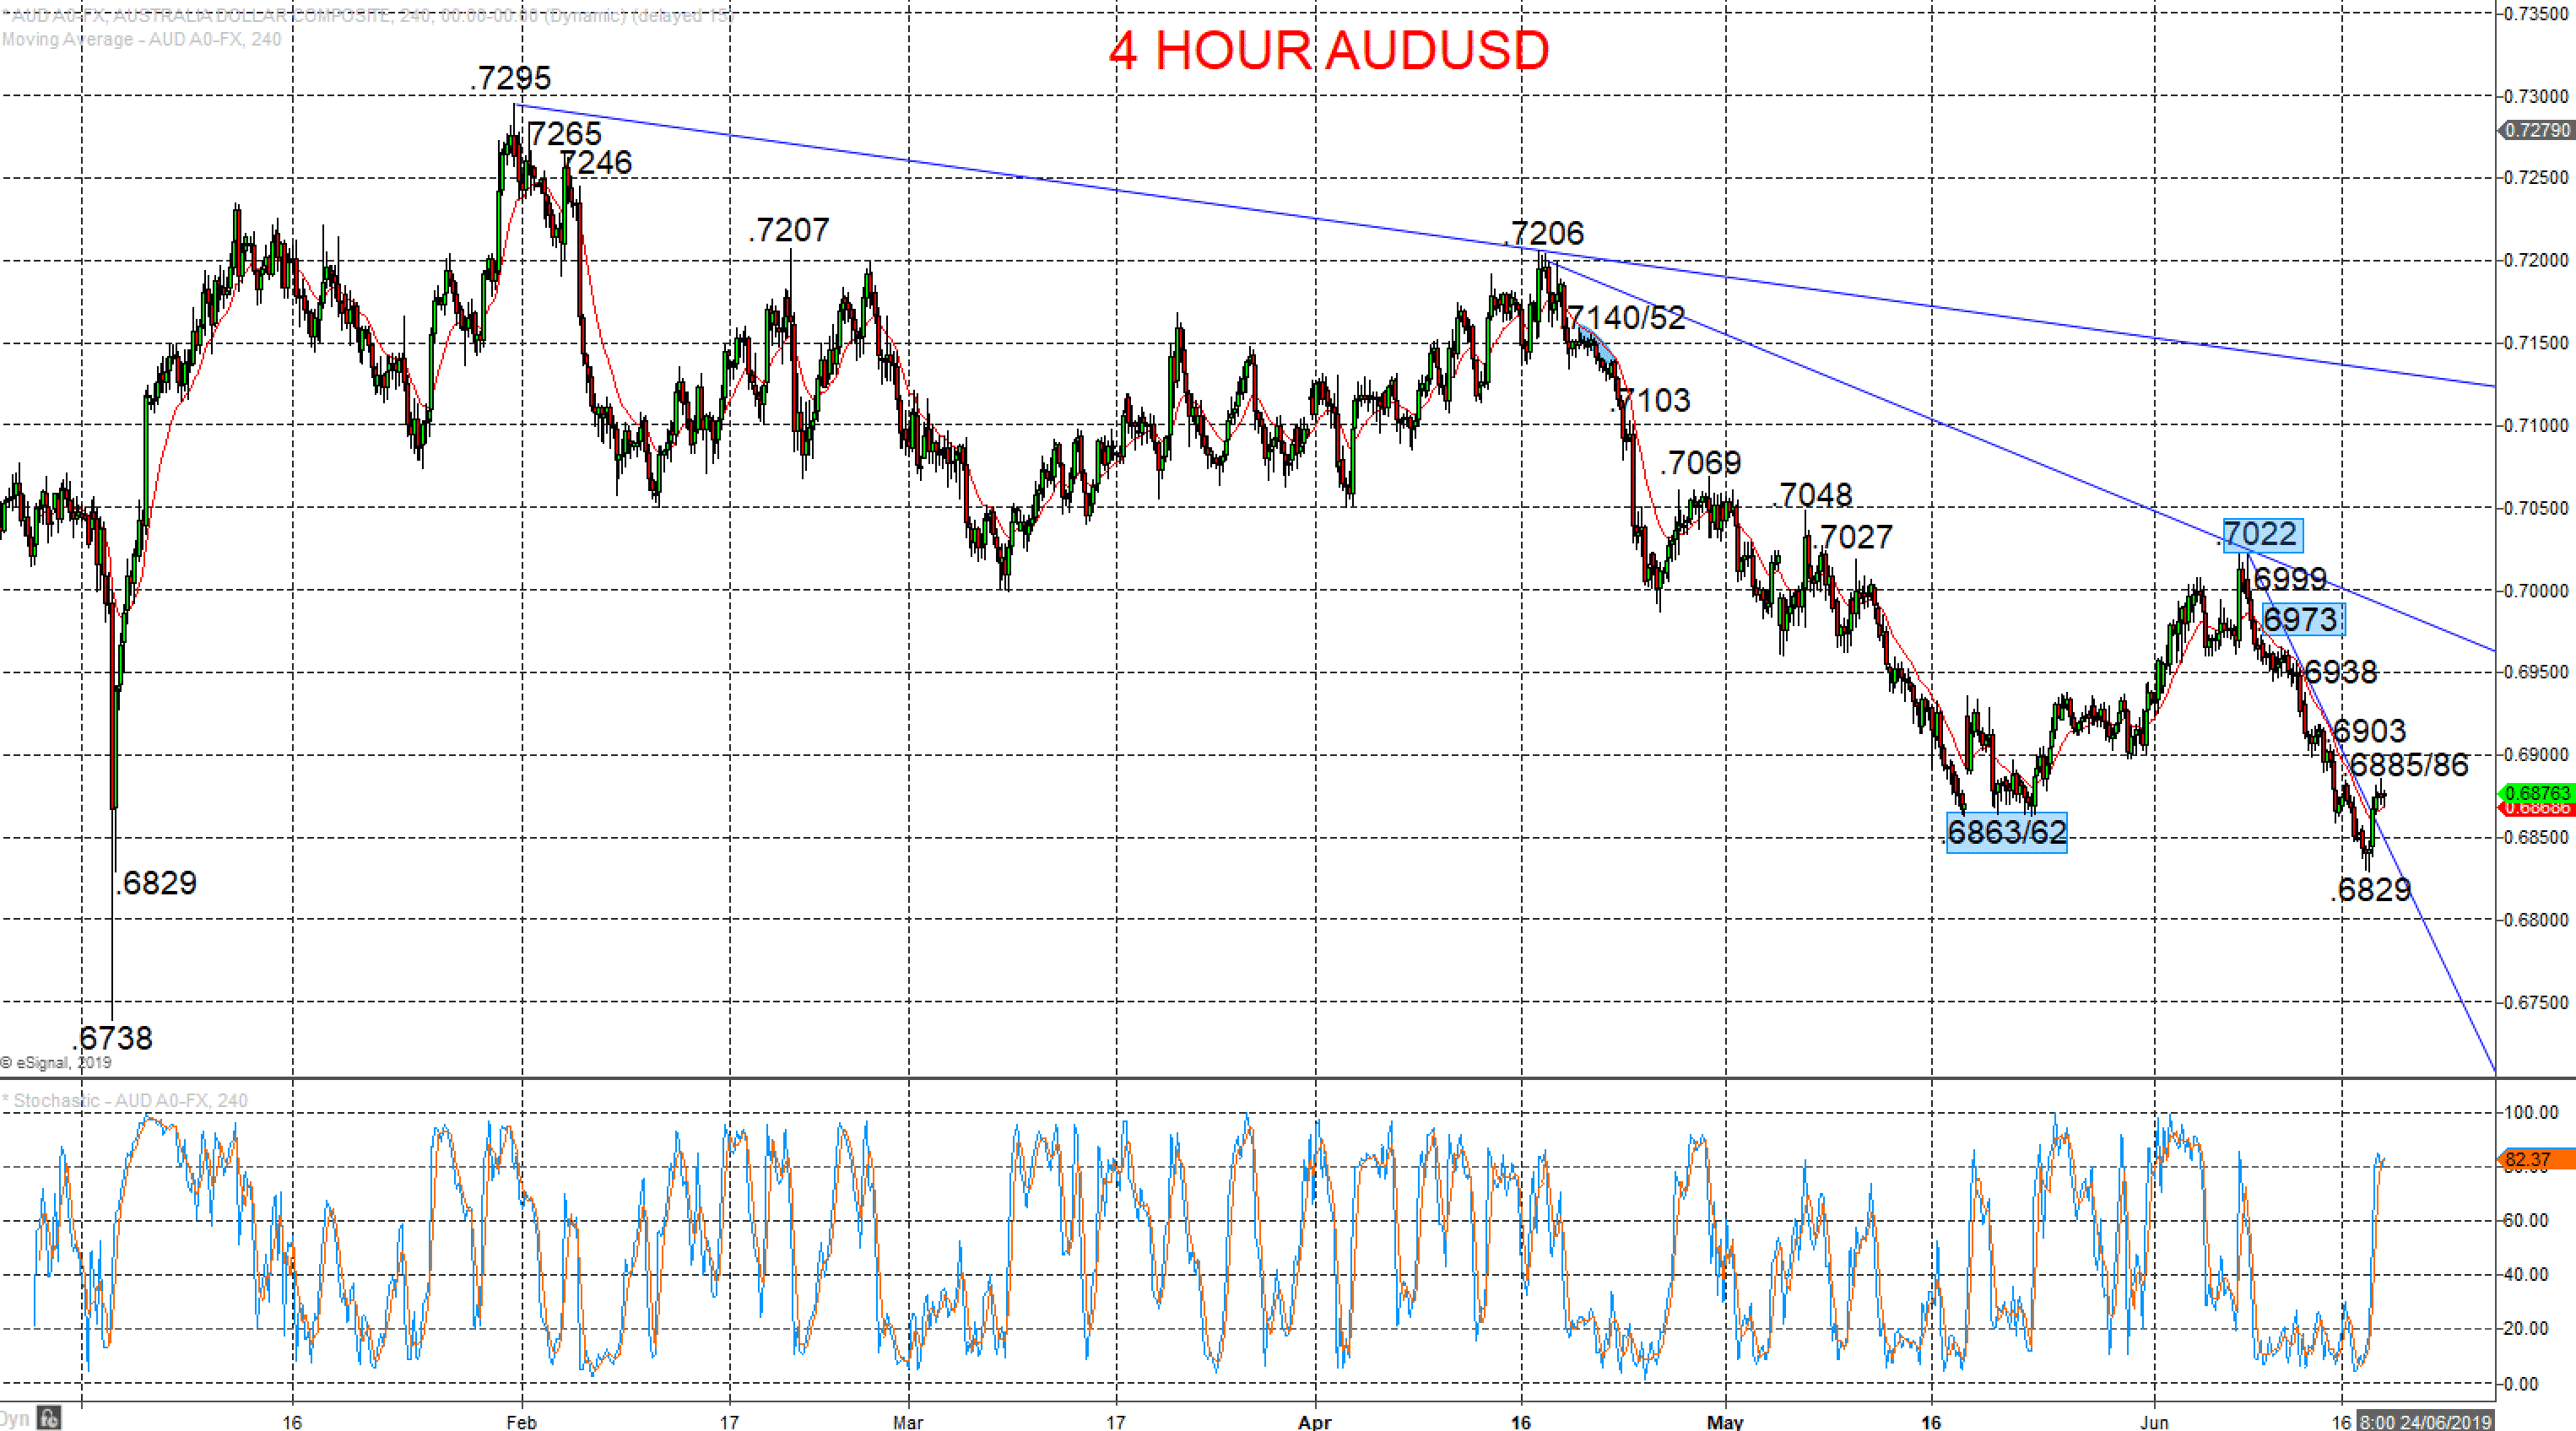 AUDUSD and NZDUSD rebounds question bear trends Image